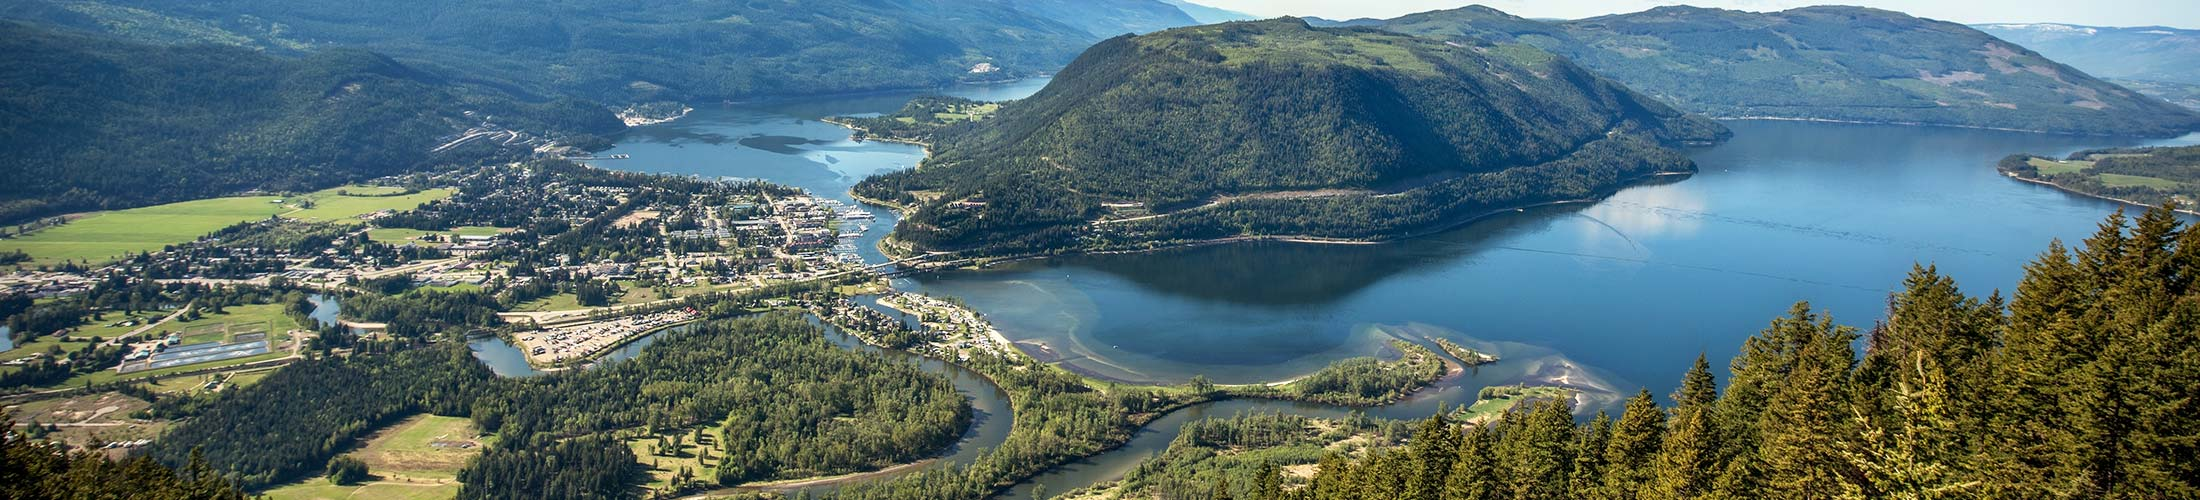 The Sicamous lookout over looking the Sicamous townsite and Shuswap Lake